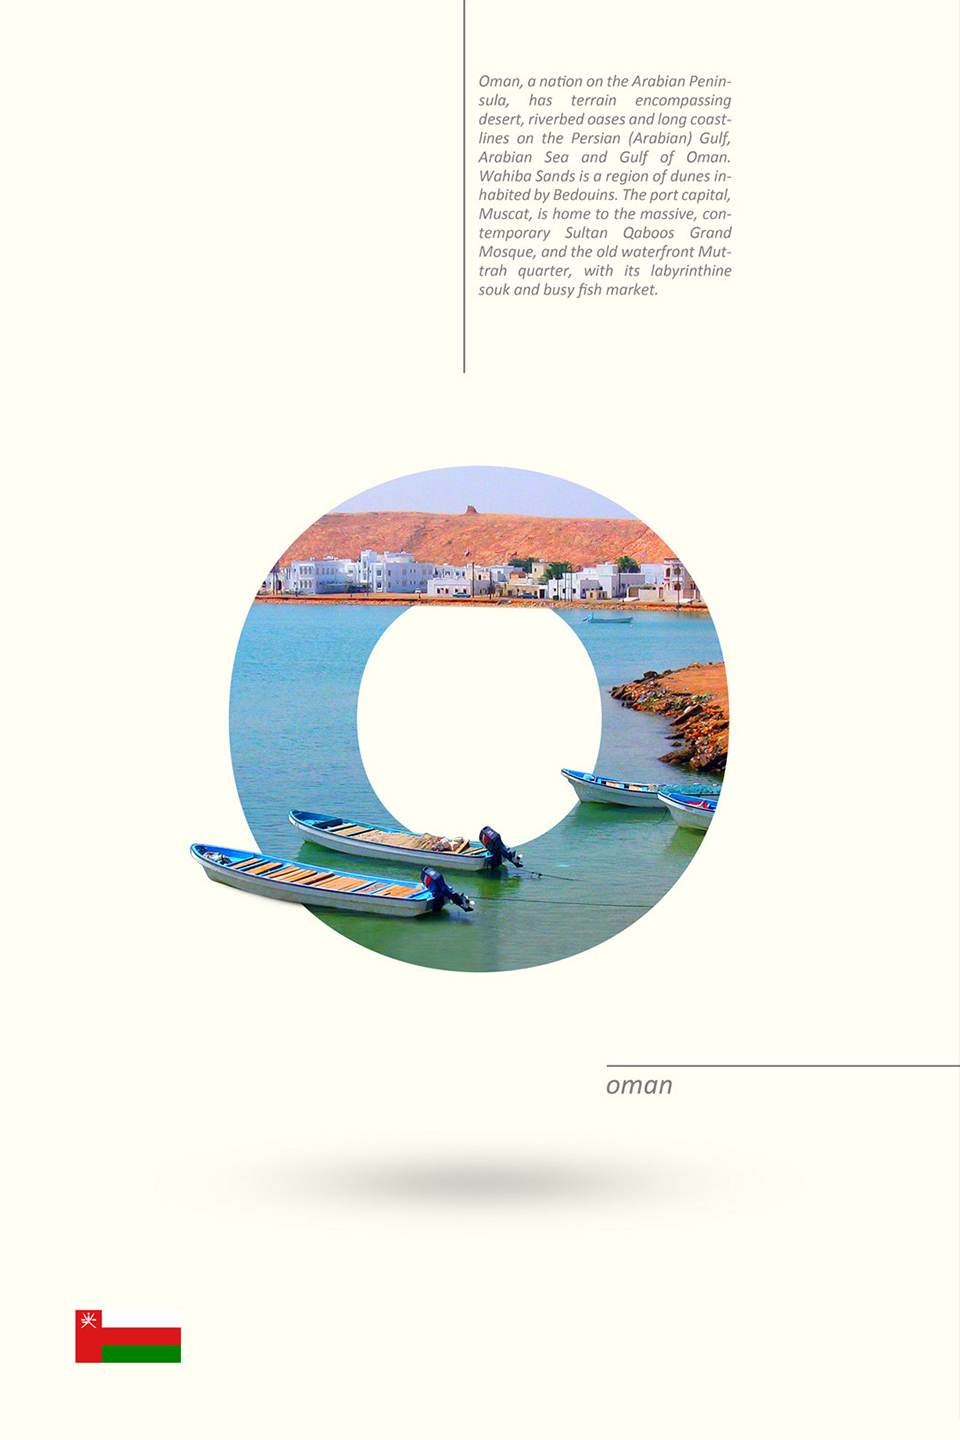 Beautiful Alphabet Series Of Countries And Their Iconic Landmarks - Oman